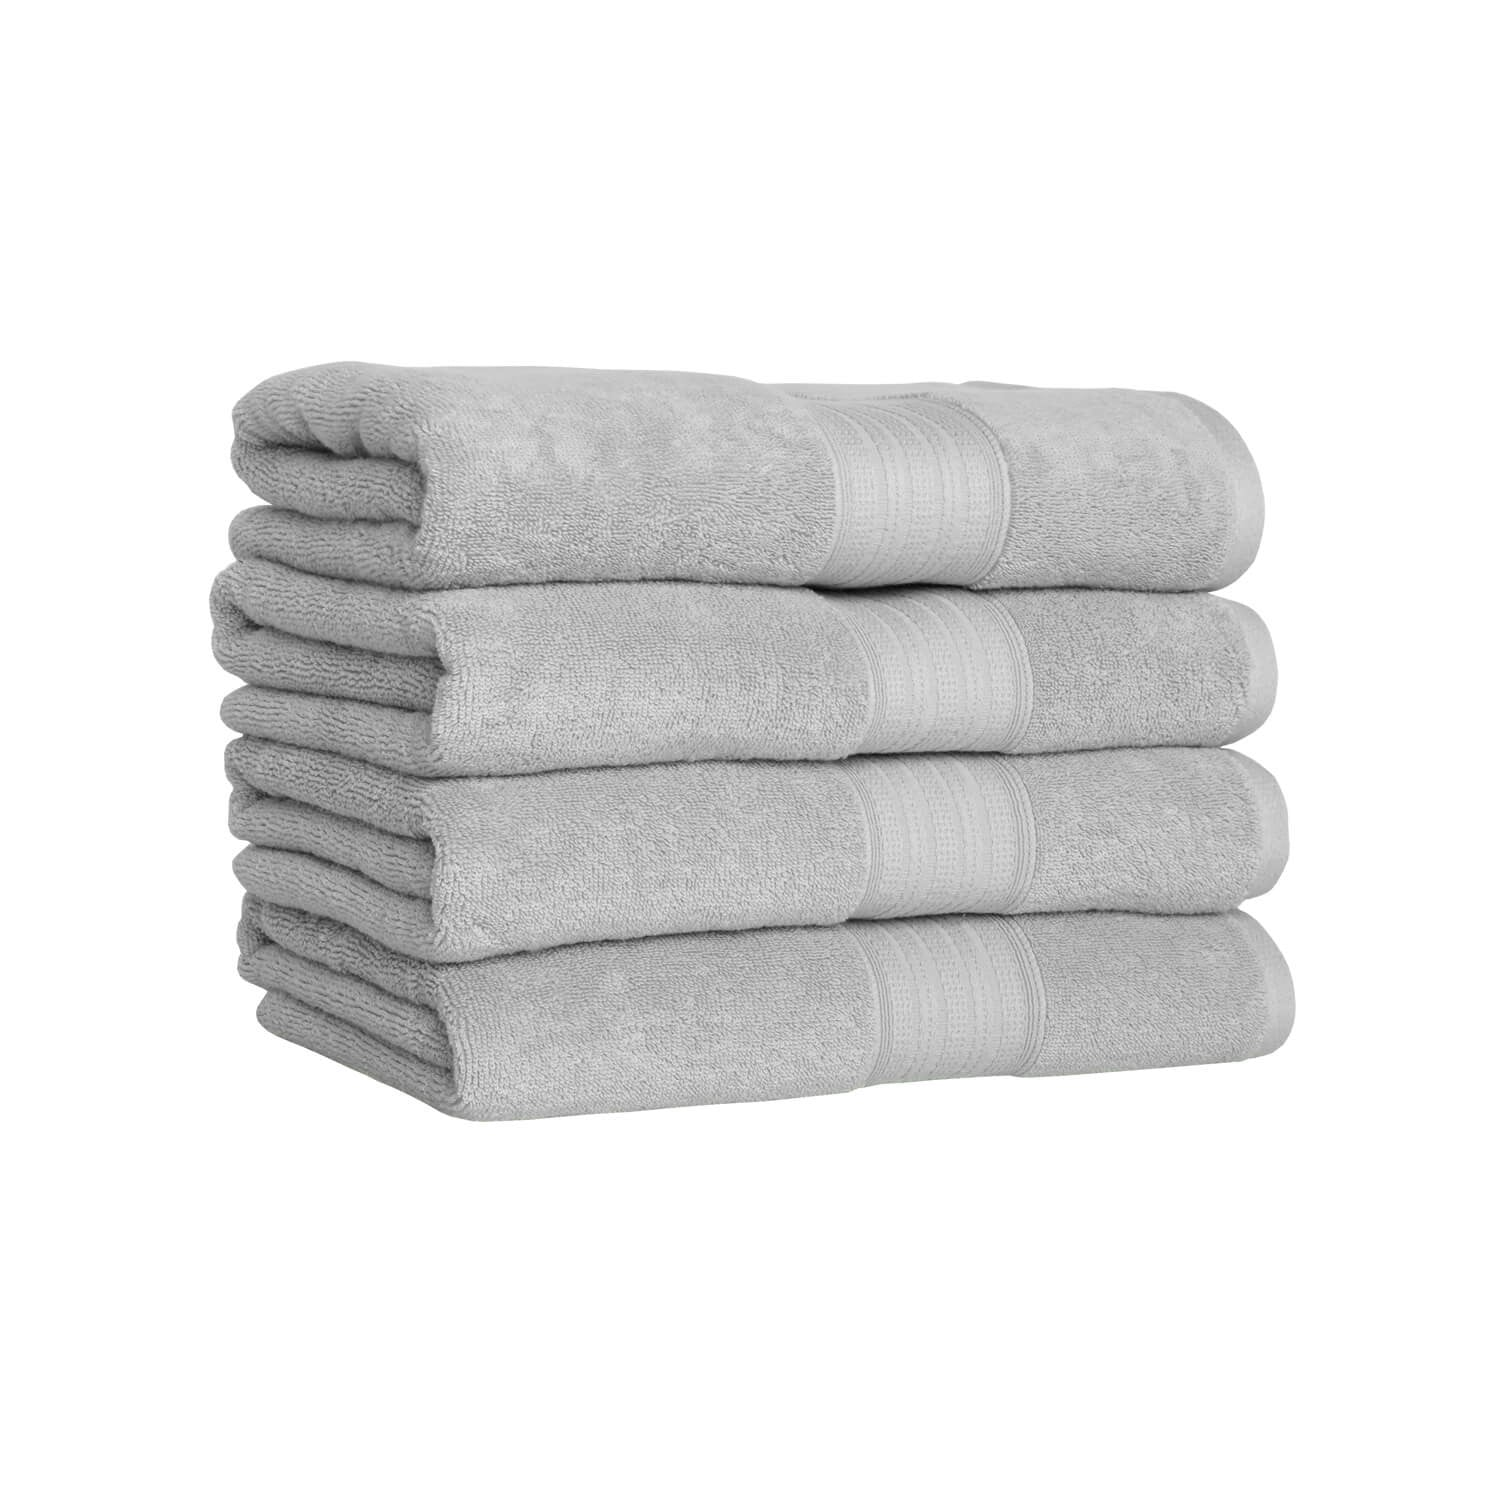 Luxe Bath Sheet - Light Grey